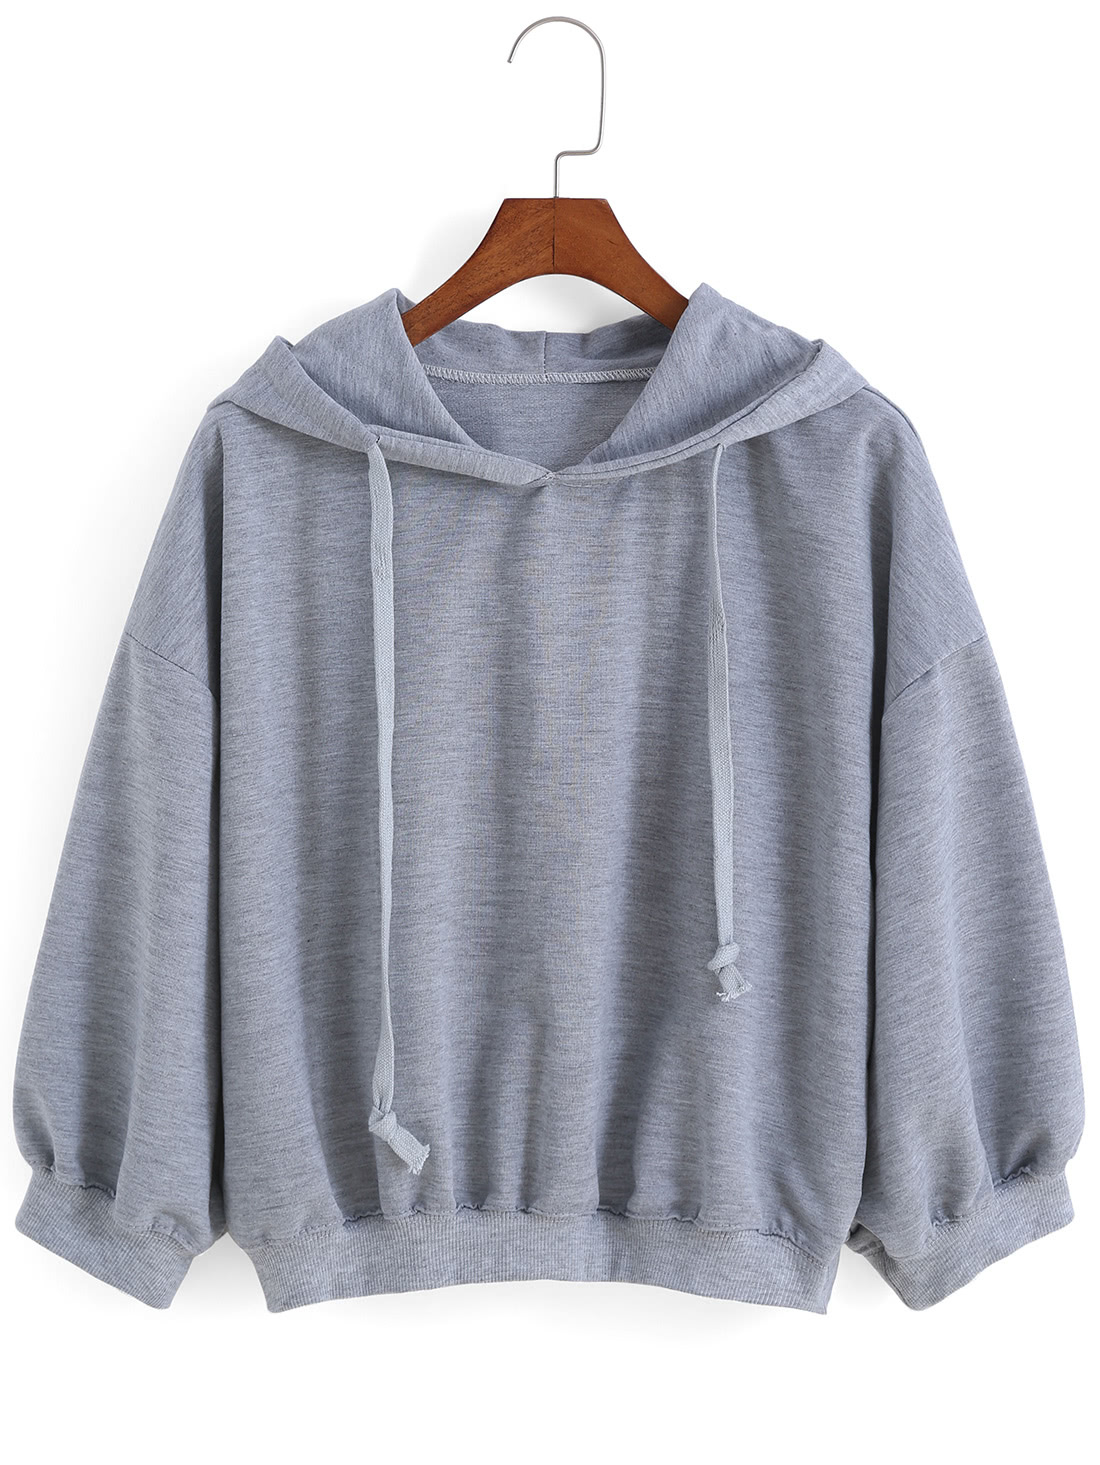 Hooded Drawstring Loose Sweatshirt drawstring bags